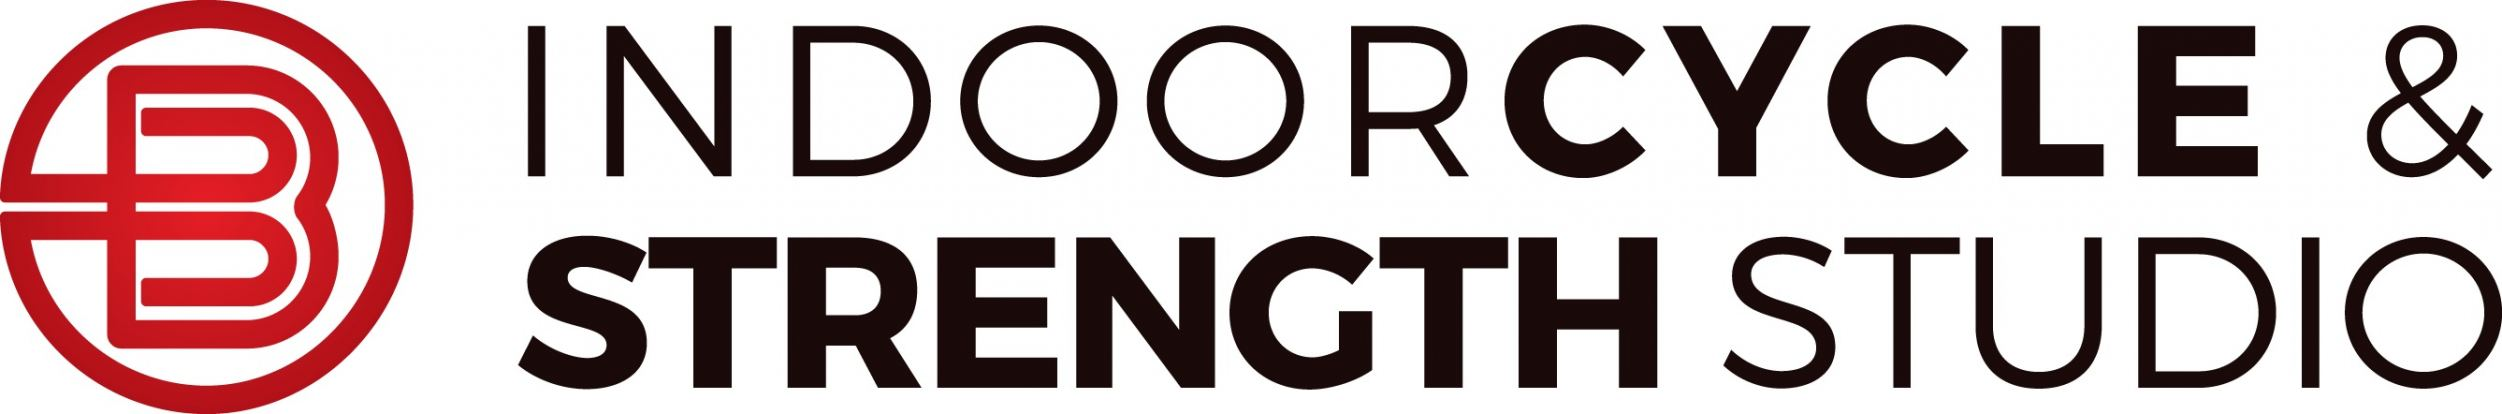 B Indoor Cycle & Strength Studio Logo